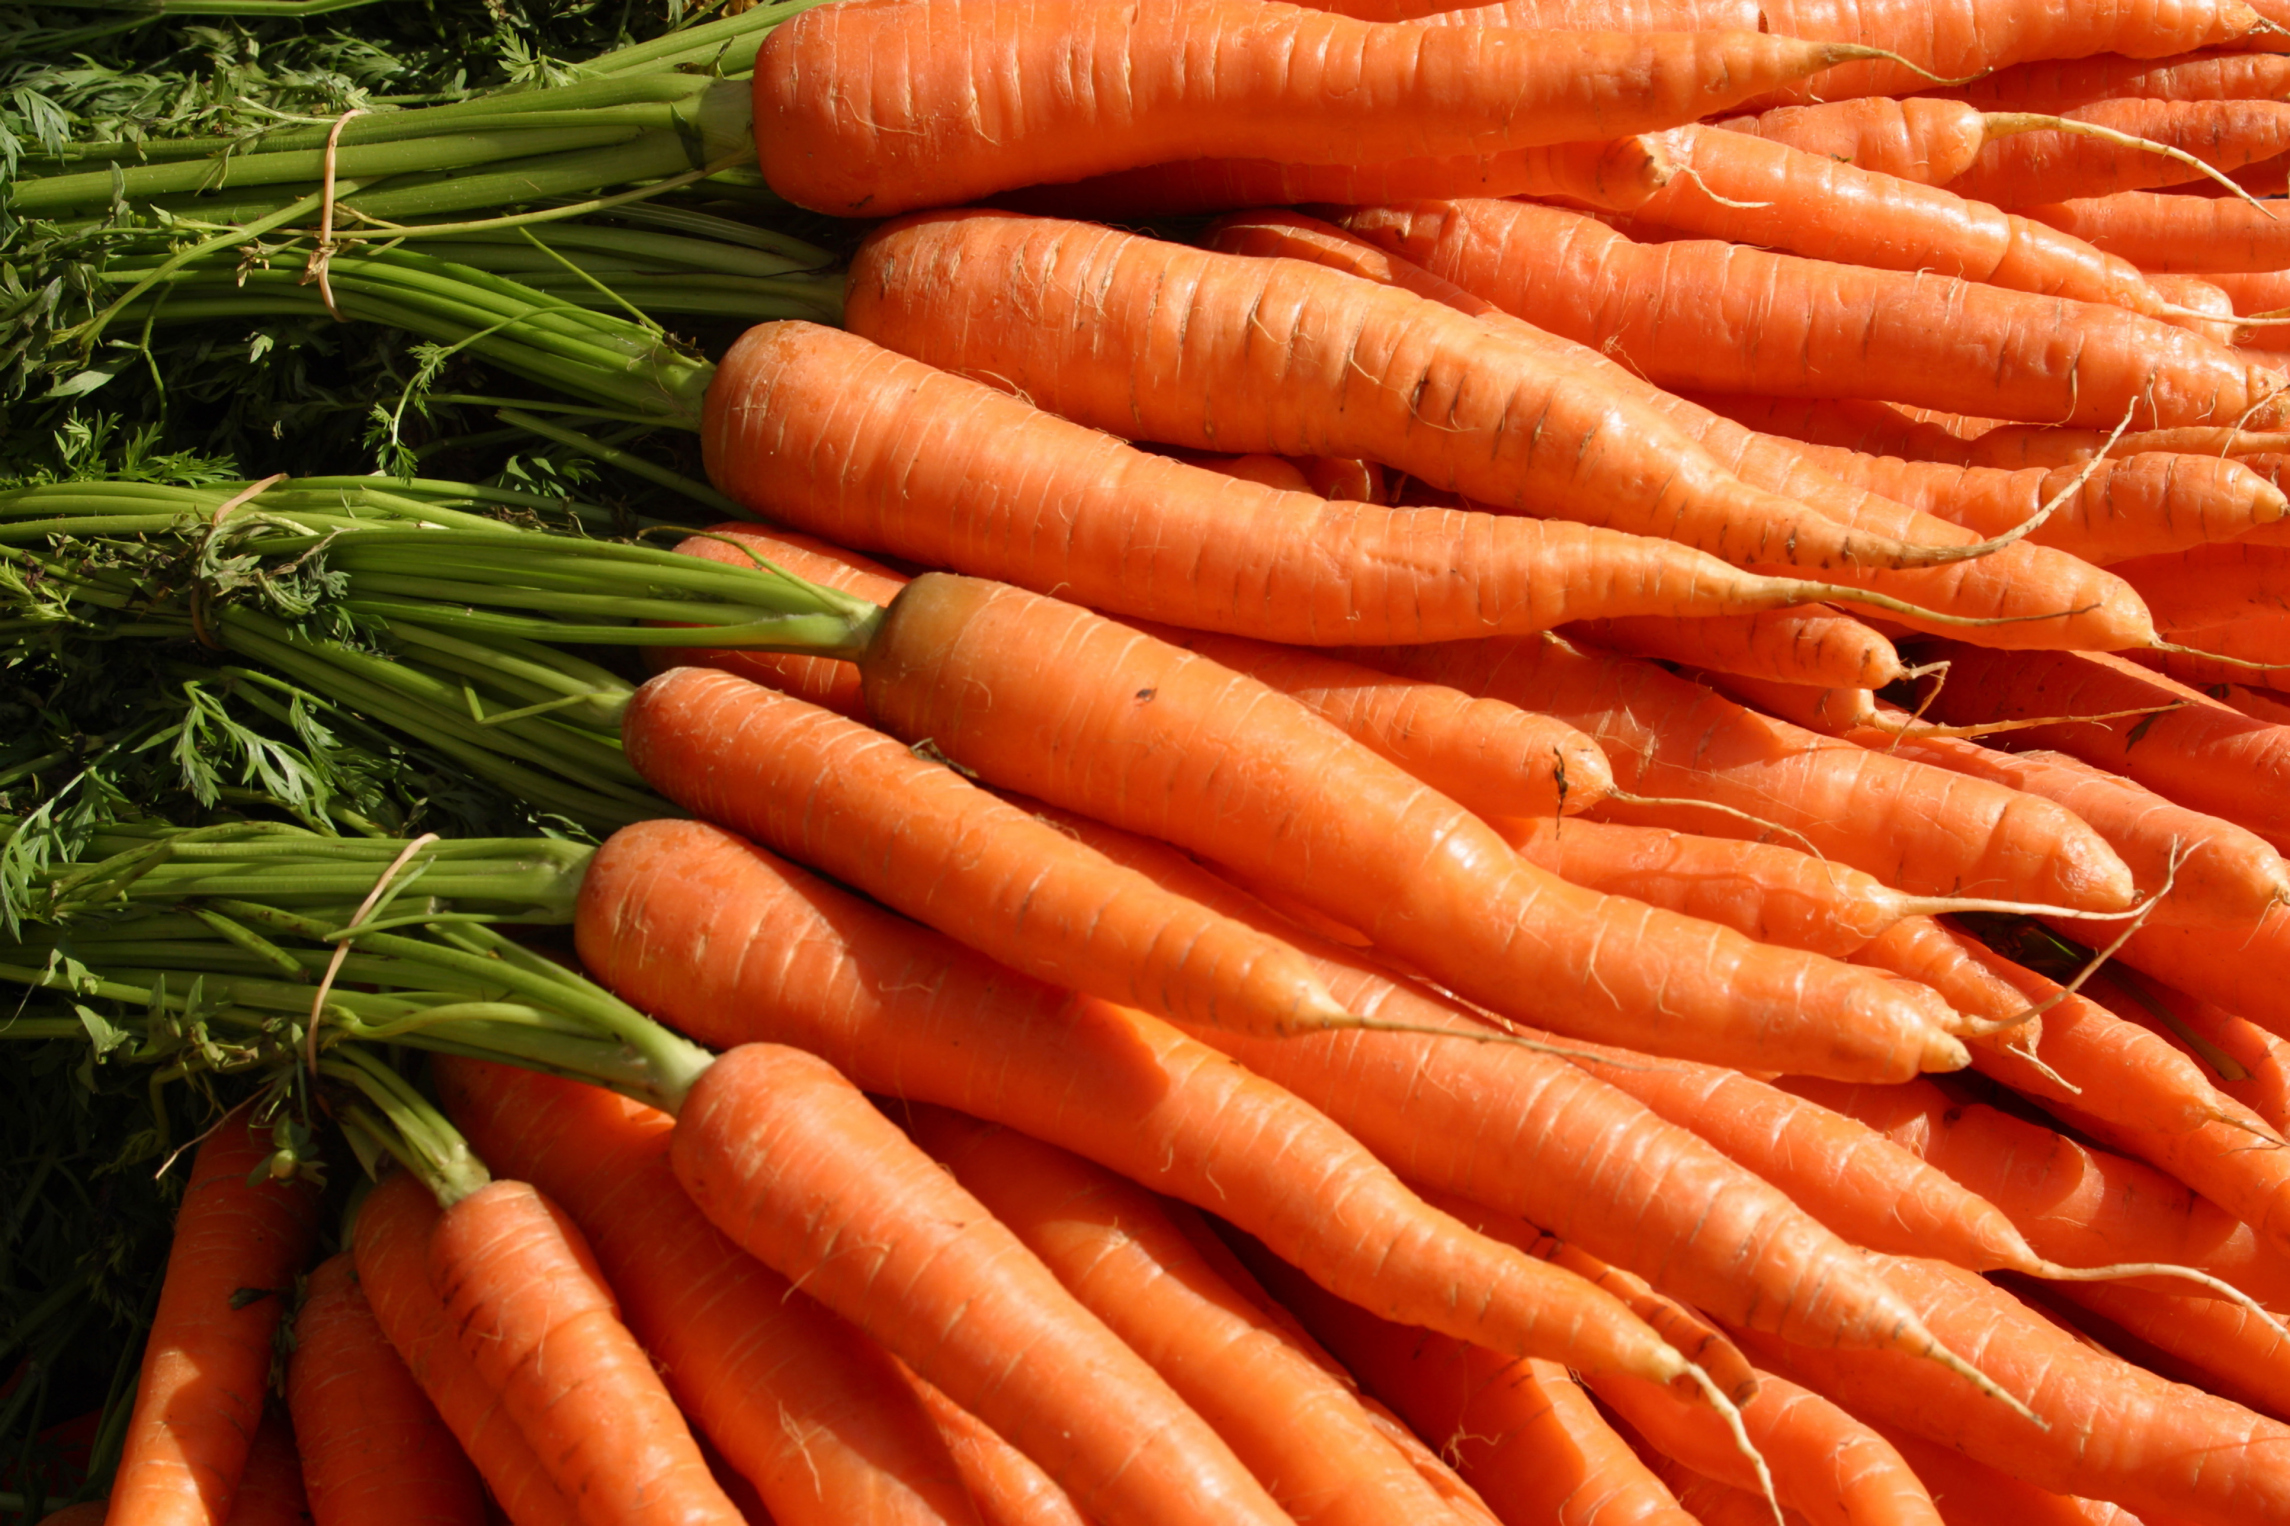 Vitamin A deficiency may decrease iron levels.